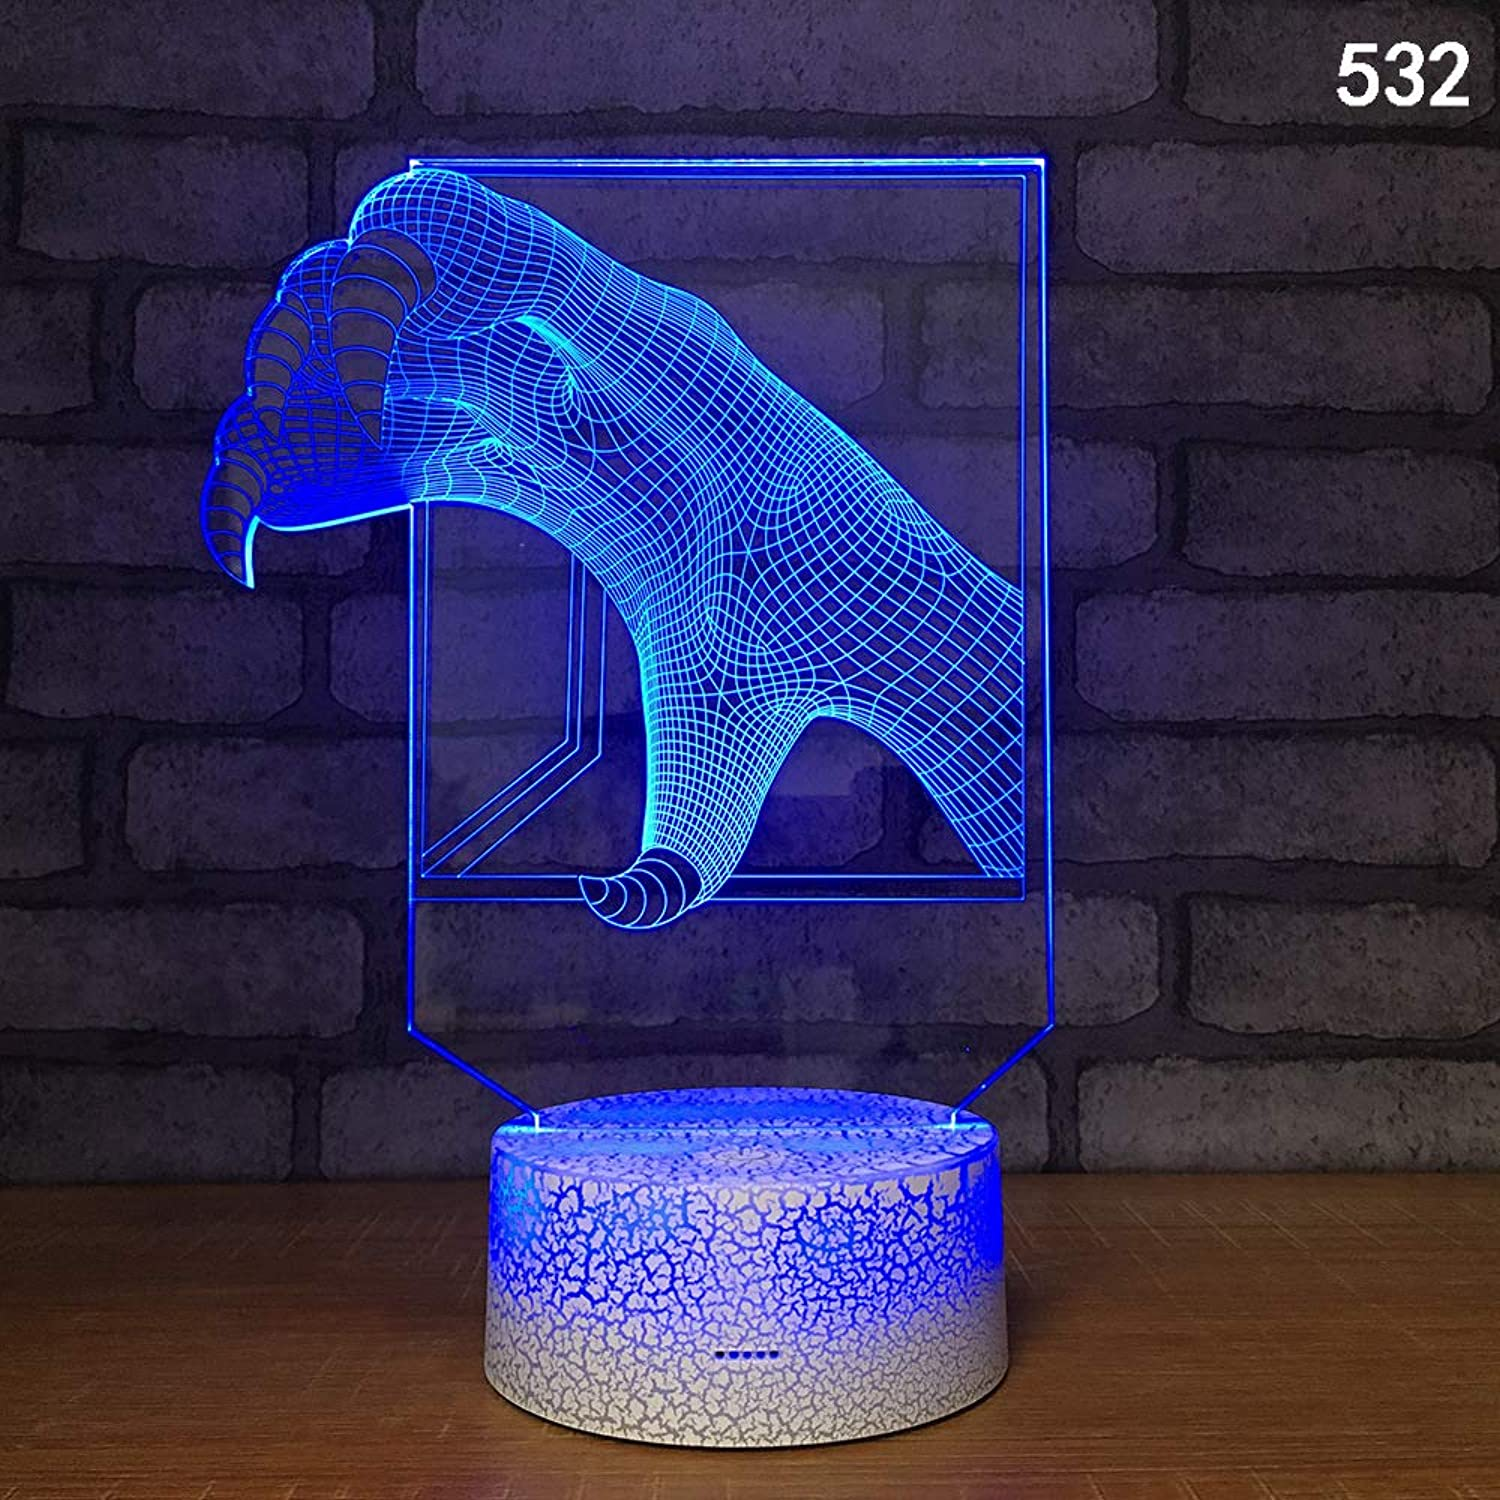 DZXGY Life Like Dinosaur 7 color Illusion led Touch Night Light 3D Touch Screen Control led Gradient Night Light x-mas Gift Bedroom Decoration,M